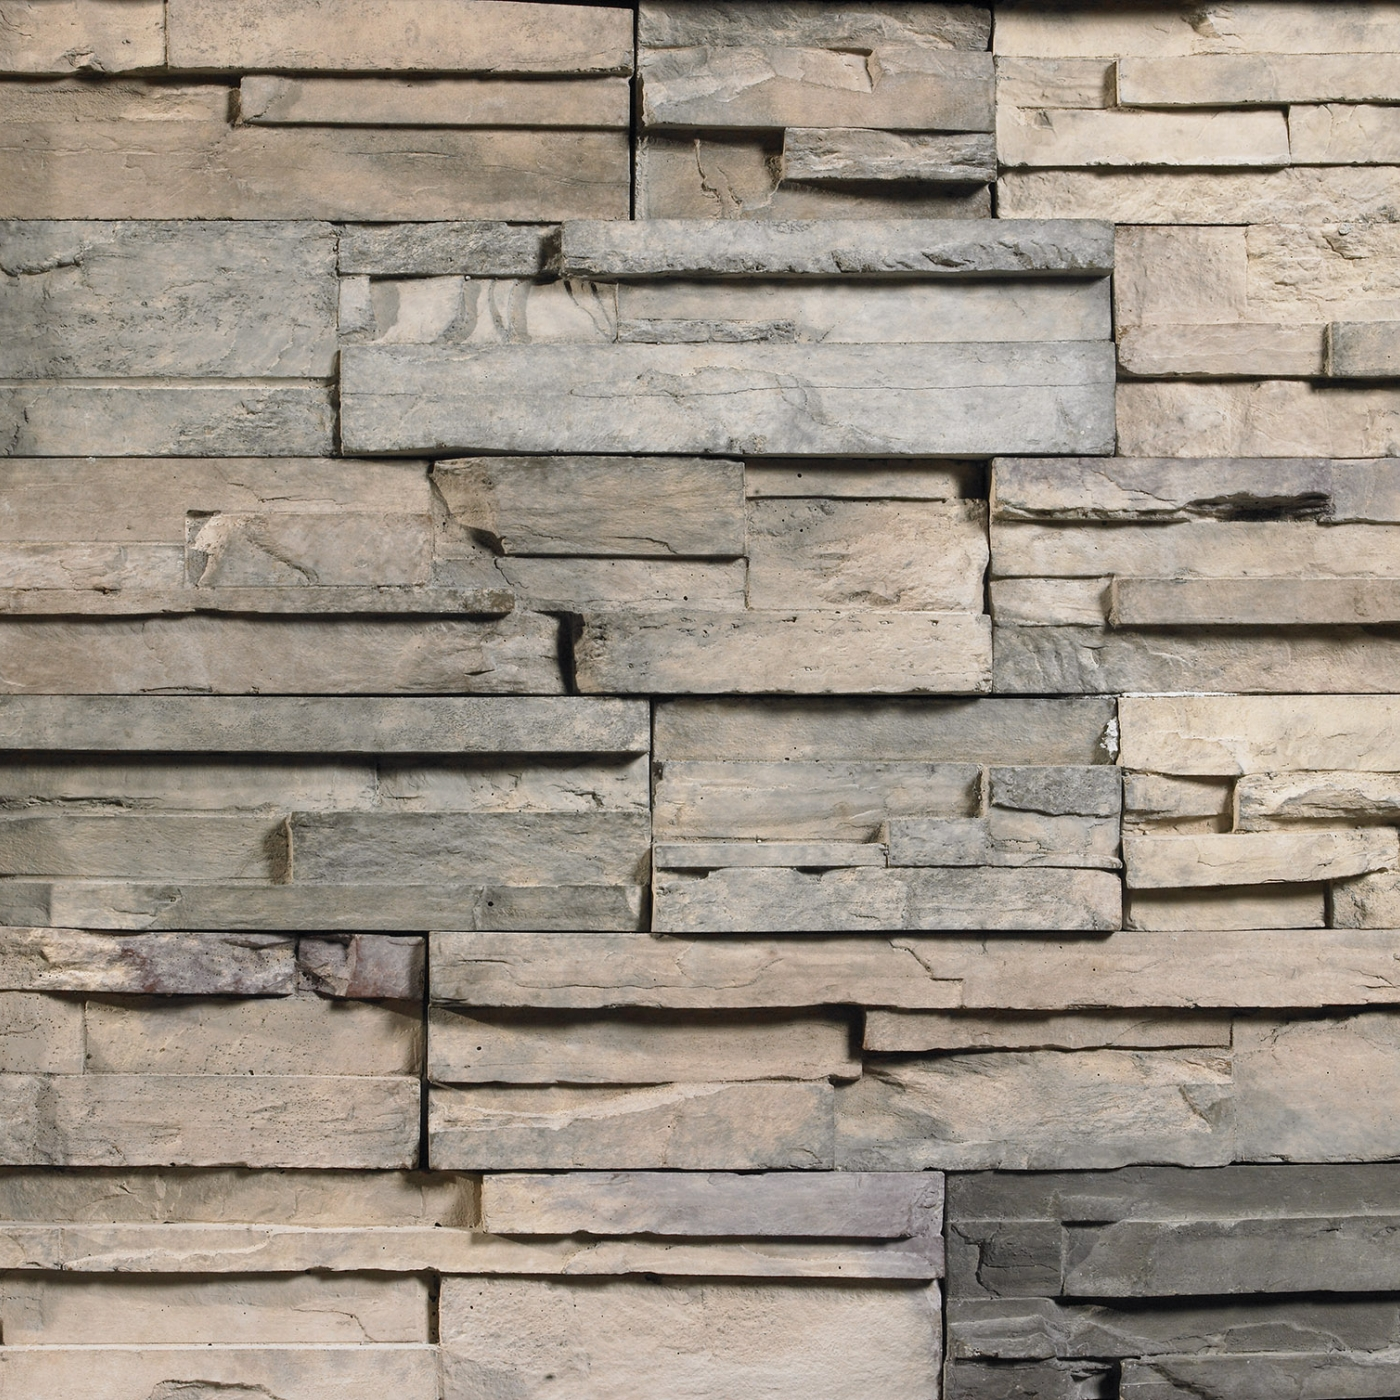 Bucks County ProStack Lite Stone Veneer from Environmental StoneWorks